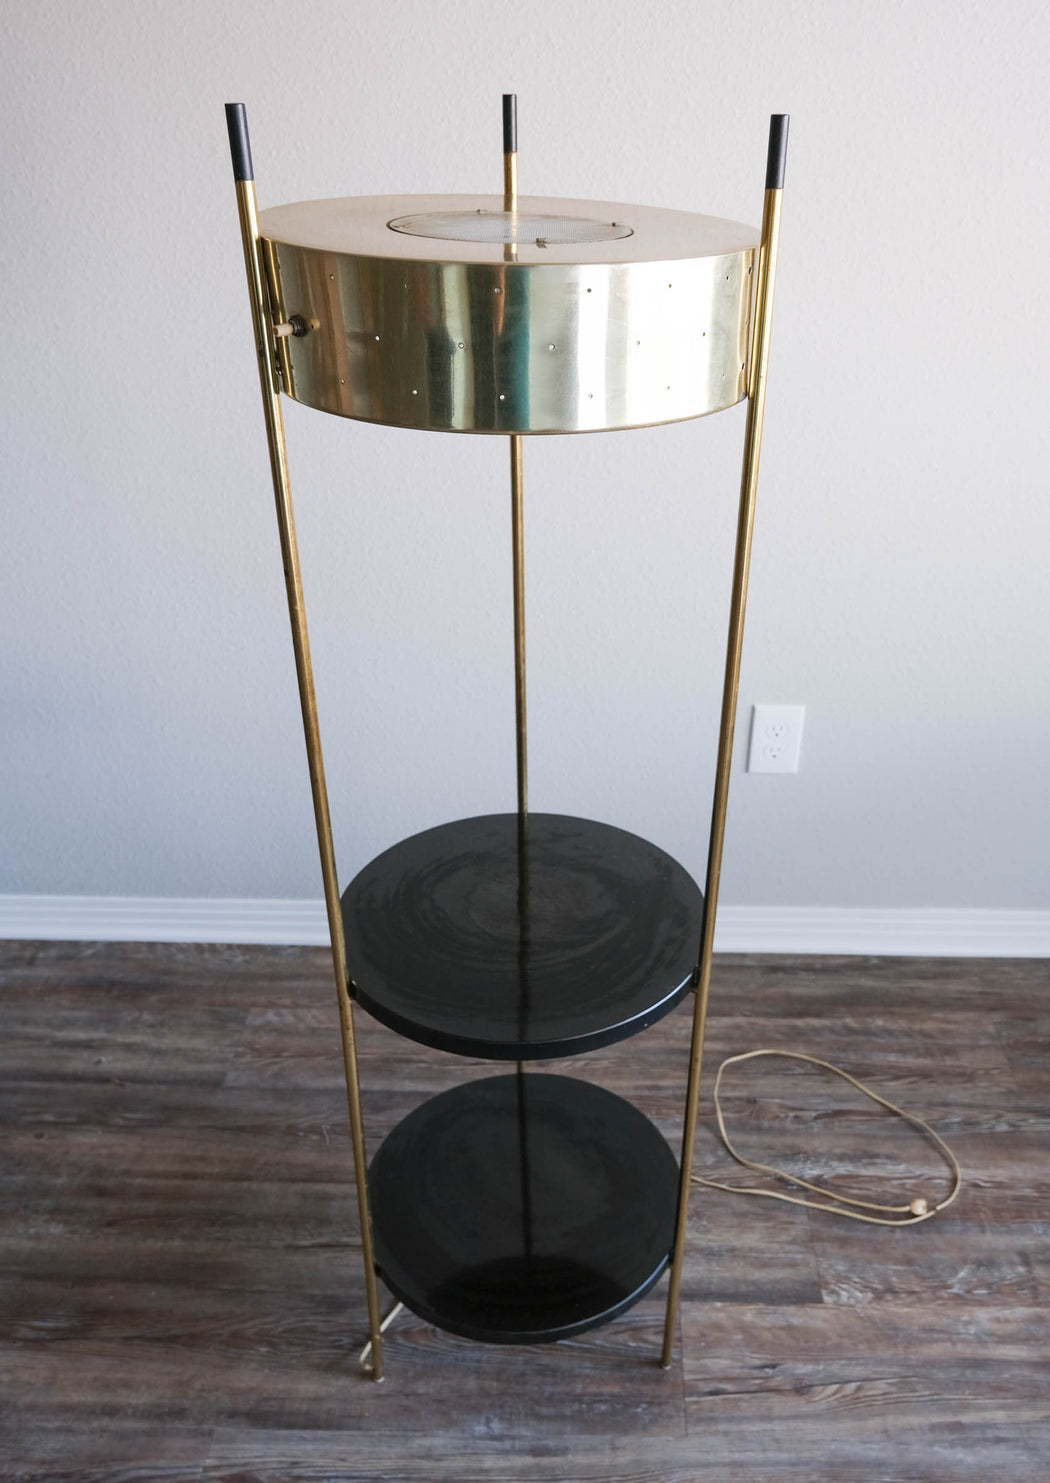 Mid Century Modern Shelf Lamp | Vintage Brass Floor Lamp with Shelves